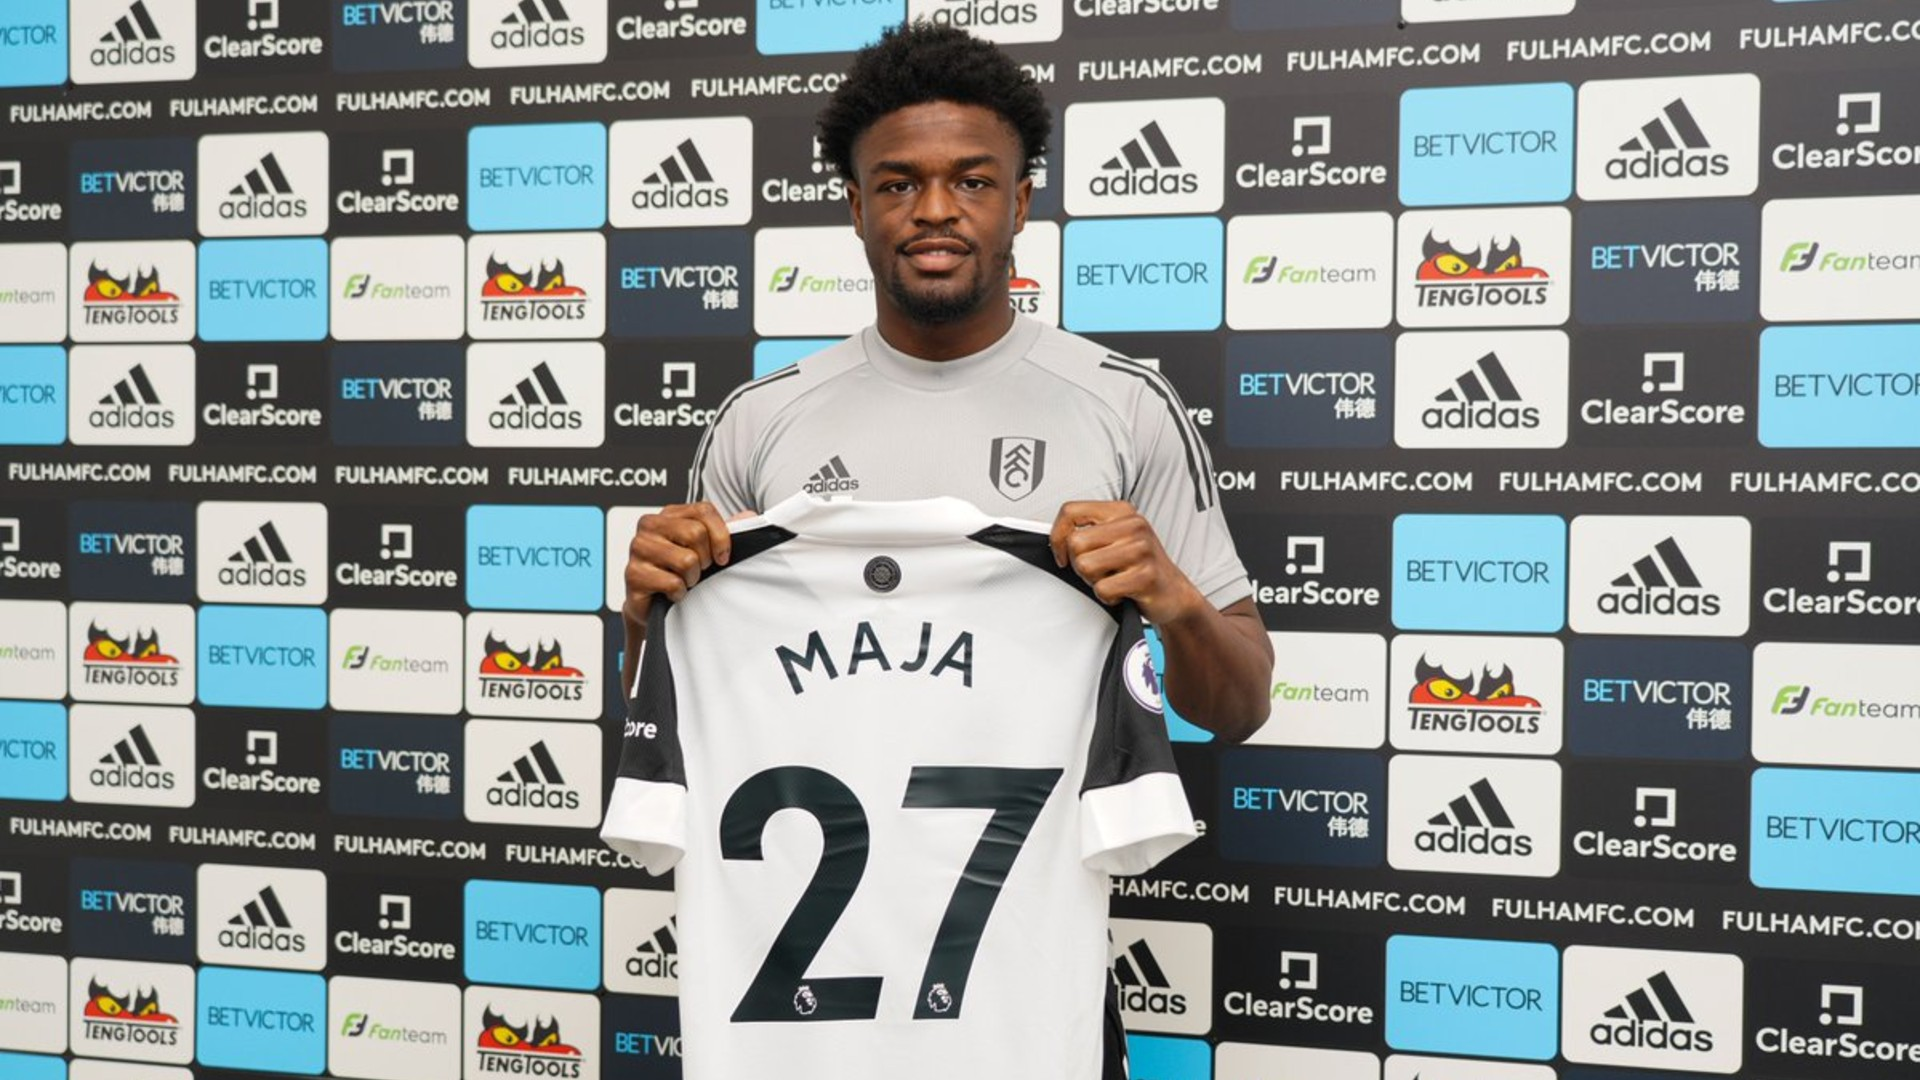 Maja makes Fulham debut against West Ham United